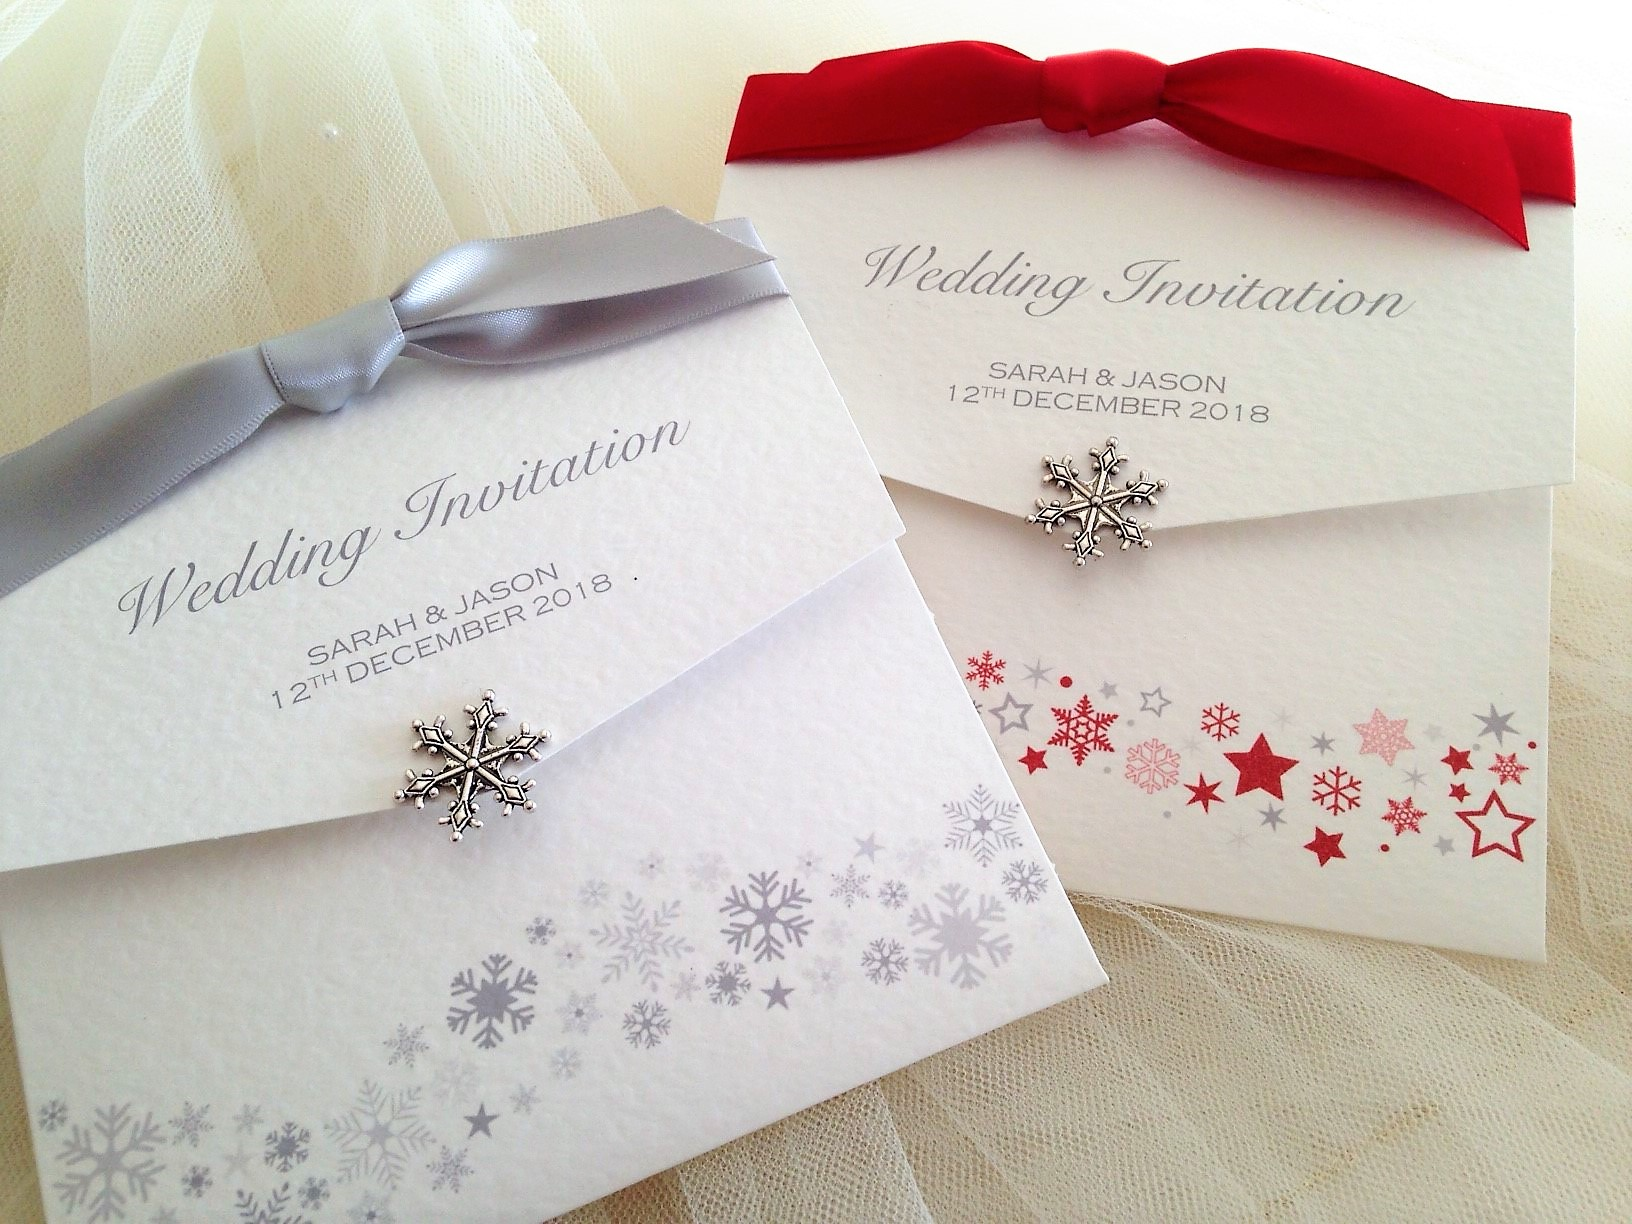 Wedding invitations – what to include - Daisy Chain Invites